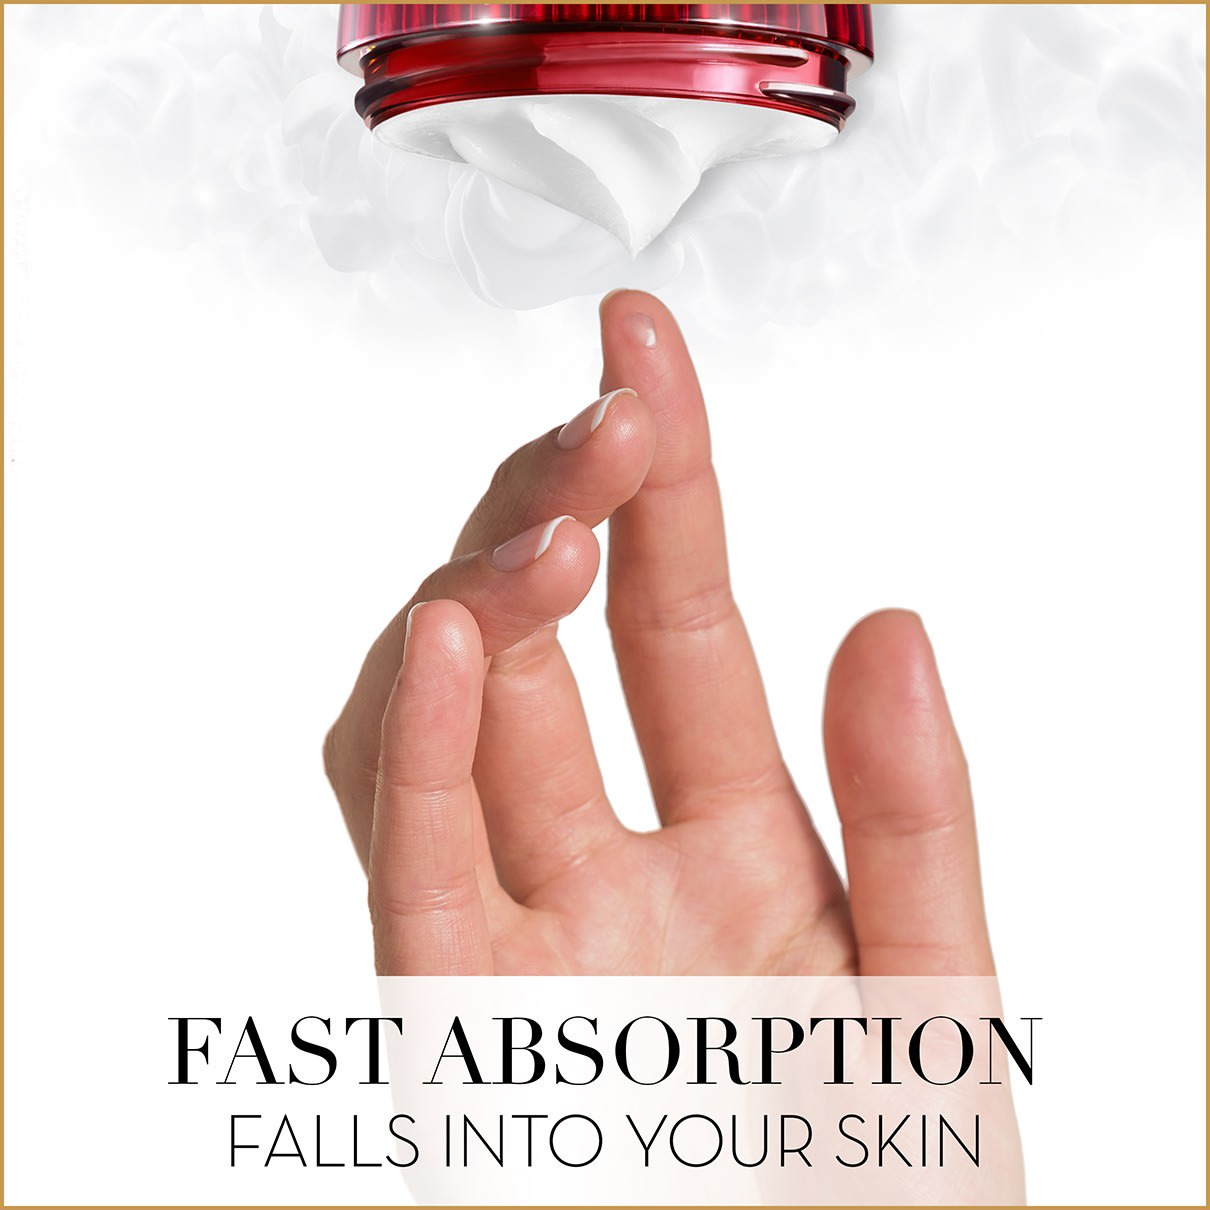 Fast Absorption Falls Into Your Skin